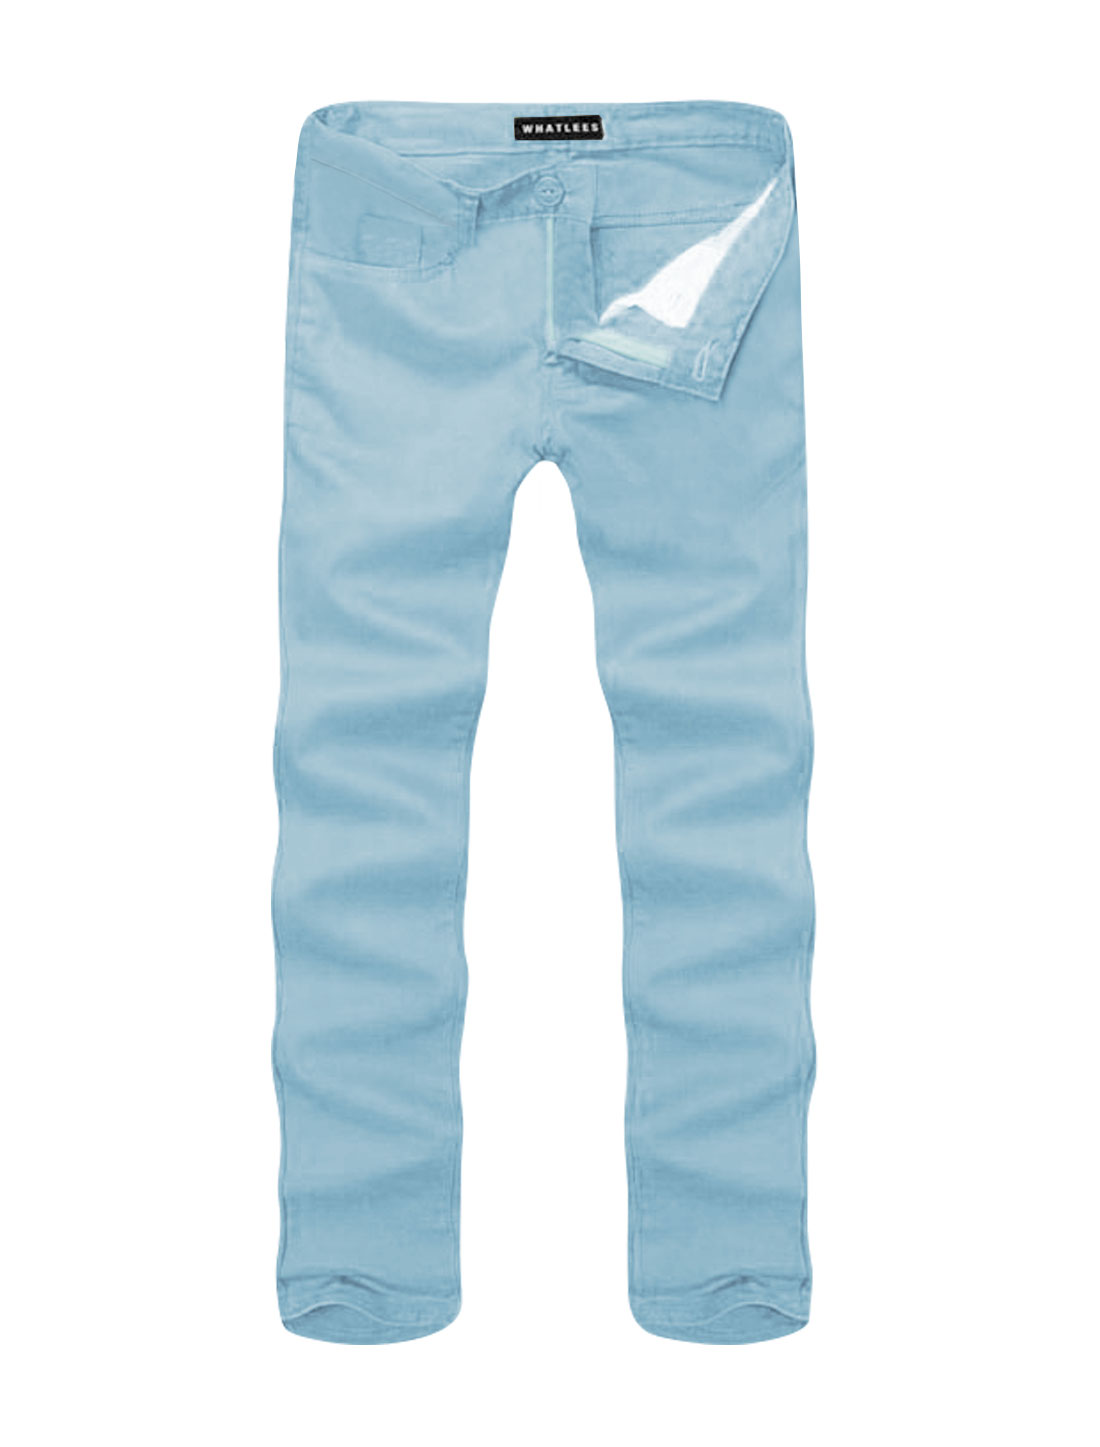 Men Mid Rise Zip Fly Side Pockets Straight Leg Casual Pants Light Blue W36